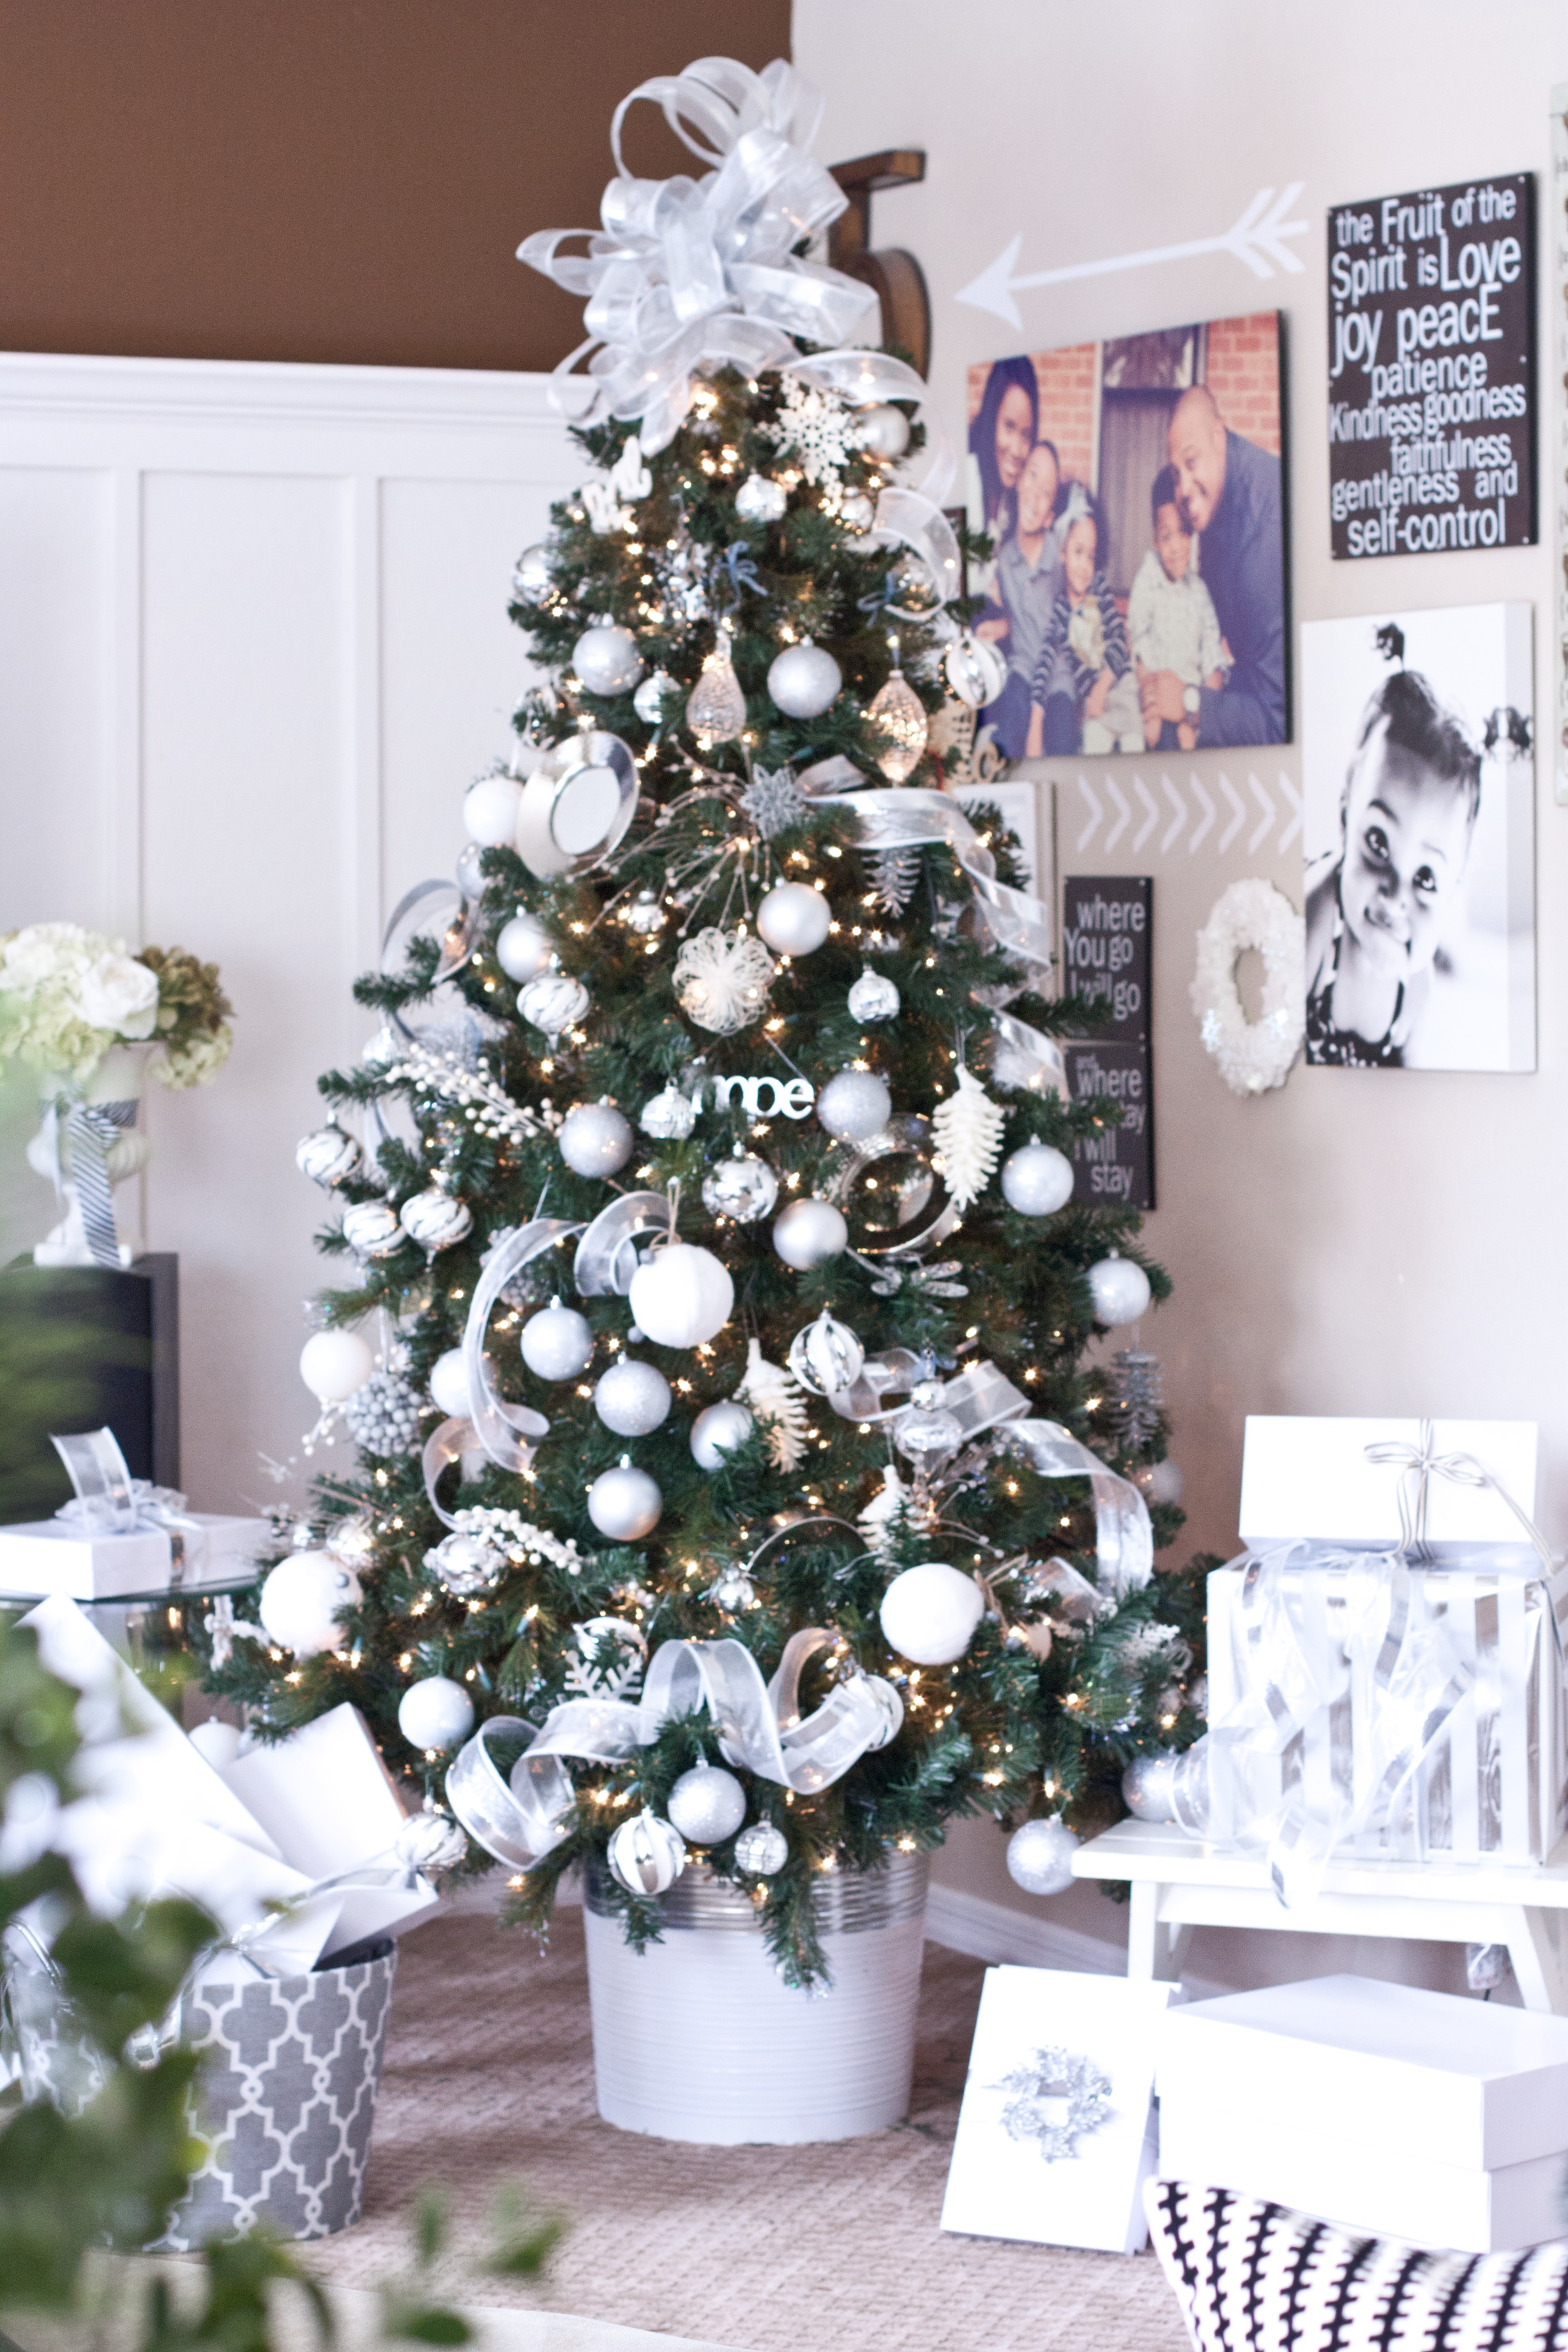 Holiday Sparkle And Cheer With Stylescope And A Two Way 50 Homegoods Giveaway Just Destiny